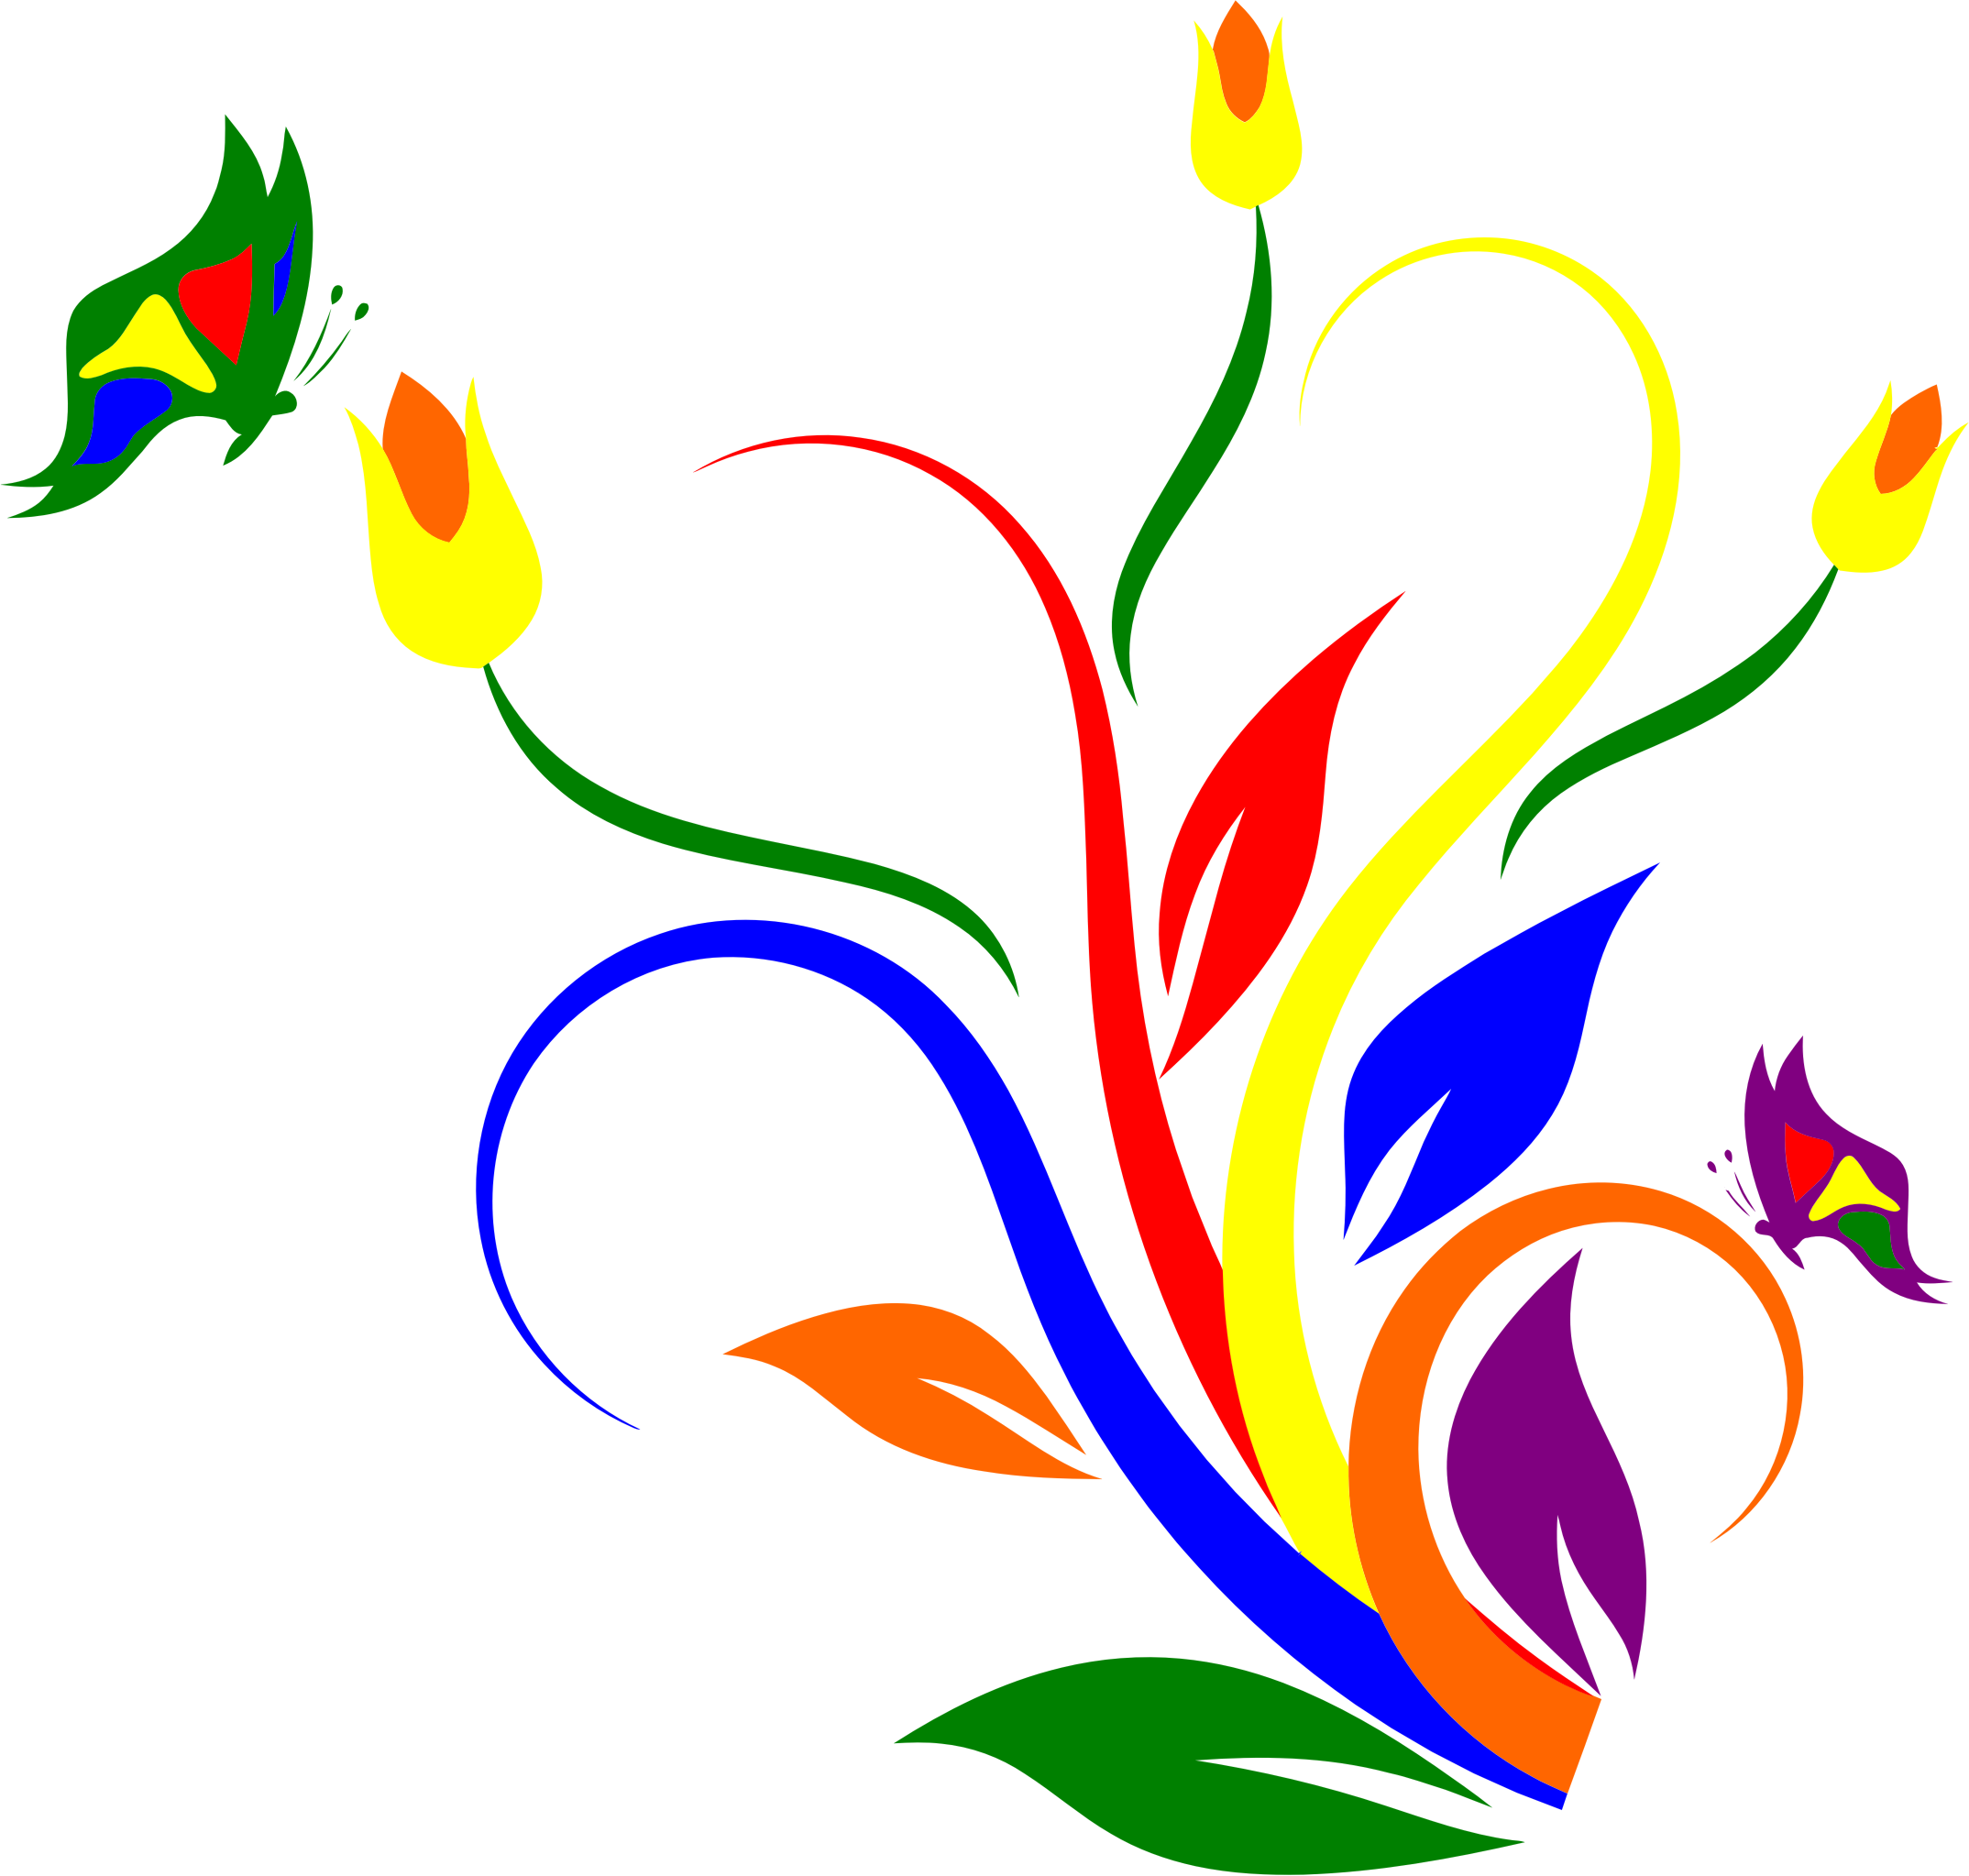 Flower clipart rainbow. Of butterflies and flowers